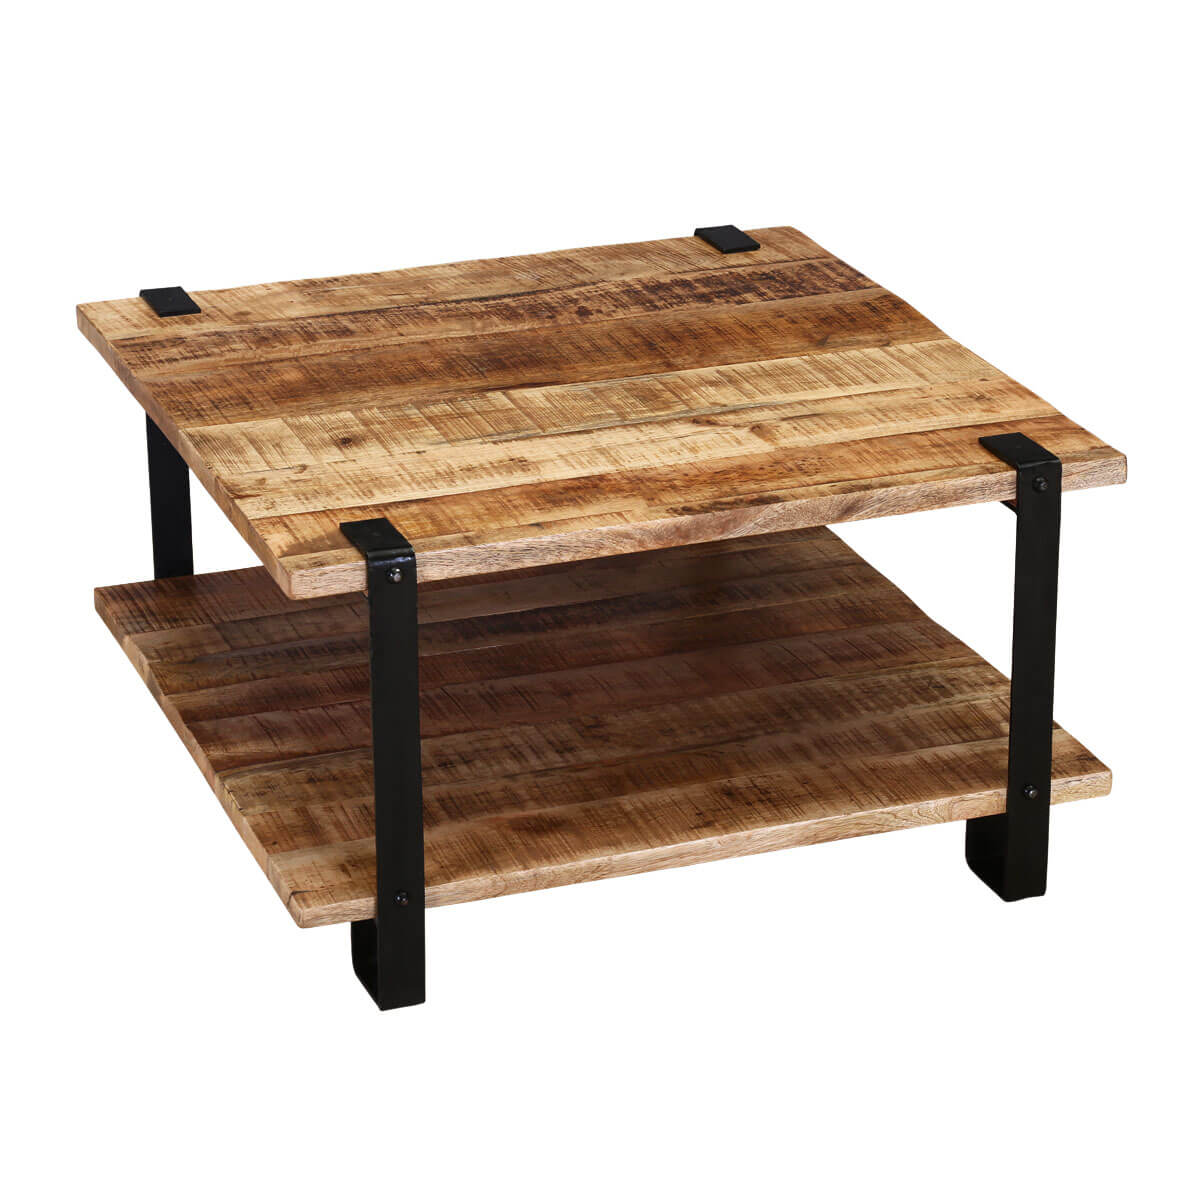 Roxborough Rustic Industrial Square Coffee Table With Saw